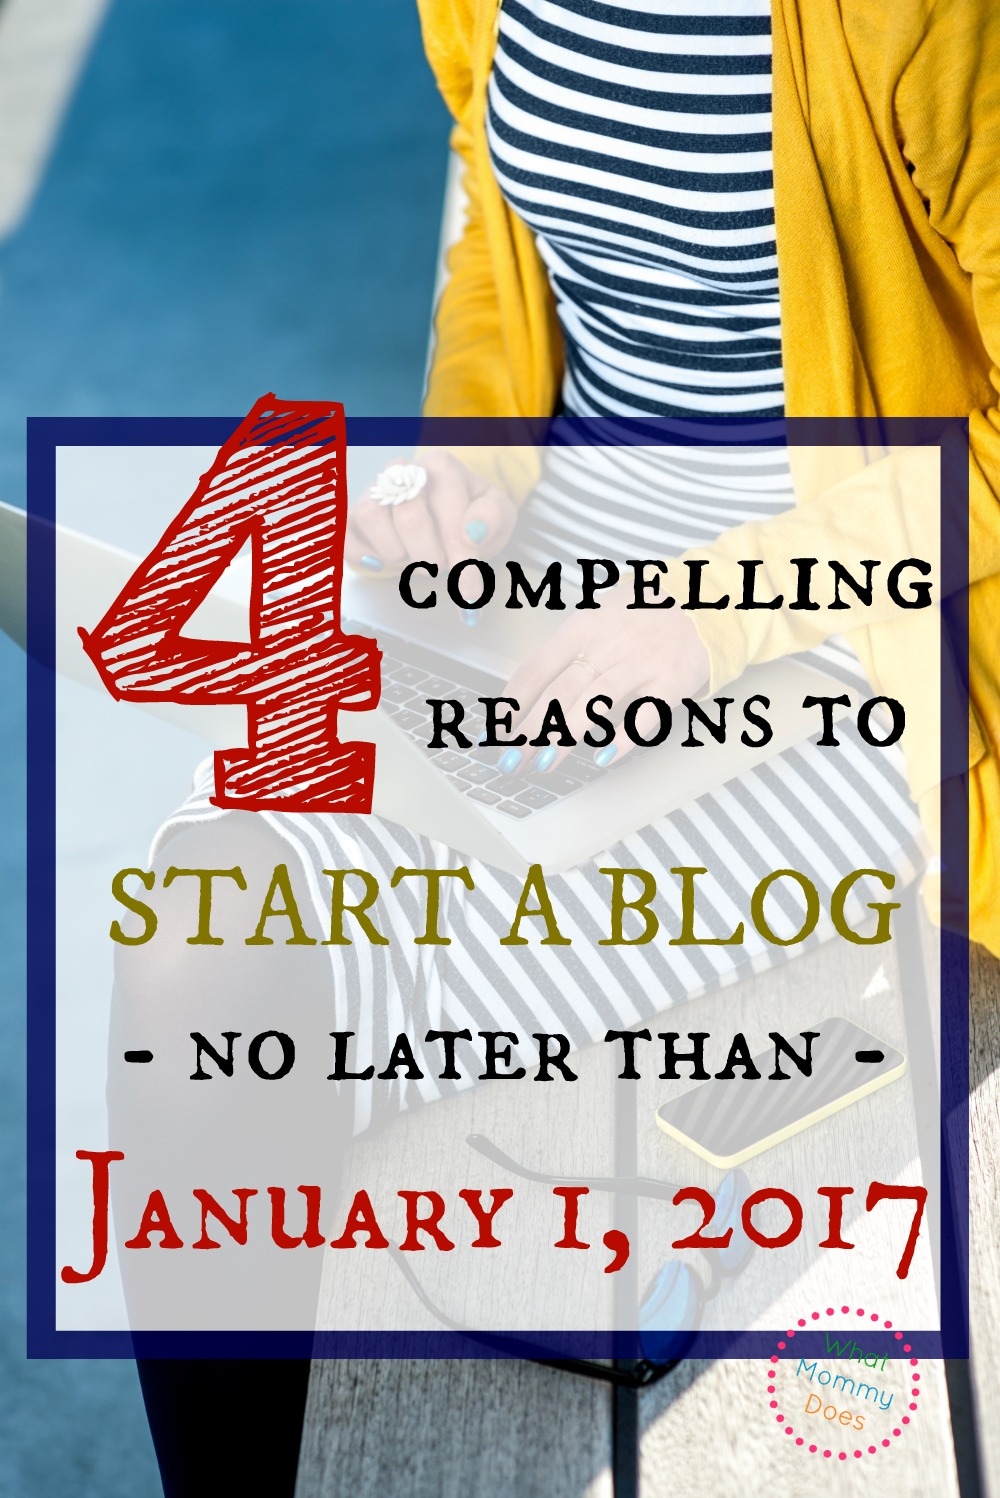 start-a-blog-no-later-than-2017